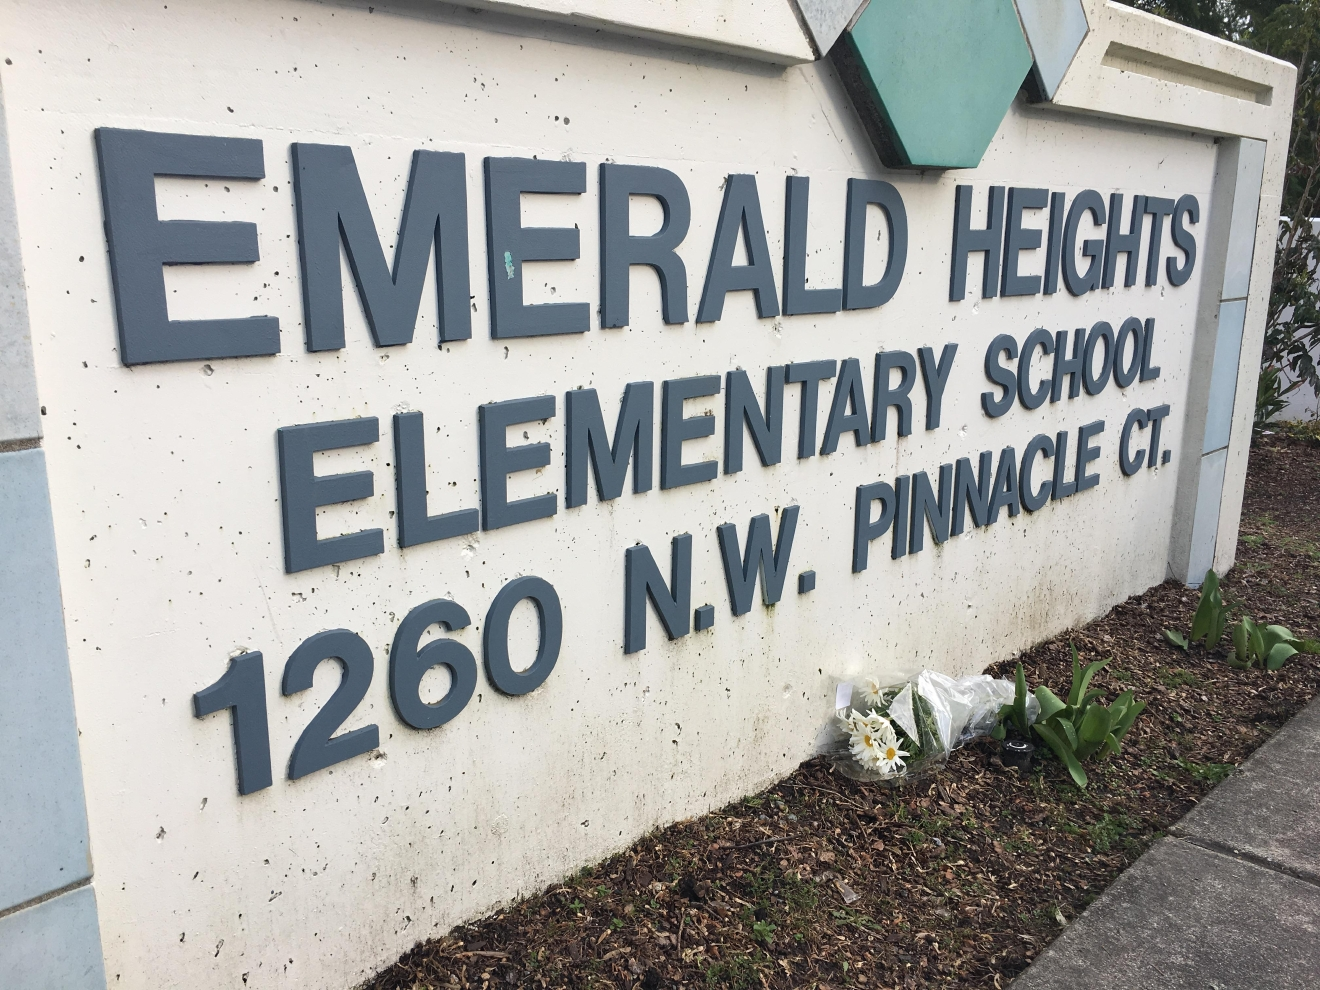 Someone placed a flower bouquet near the front entrance to Emerald Heights Elementary School in Silverdale. (KOMO Photo)